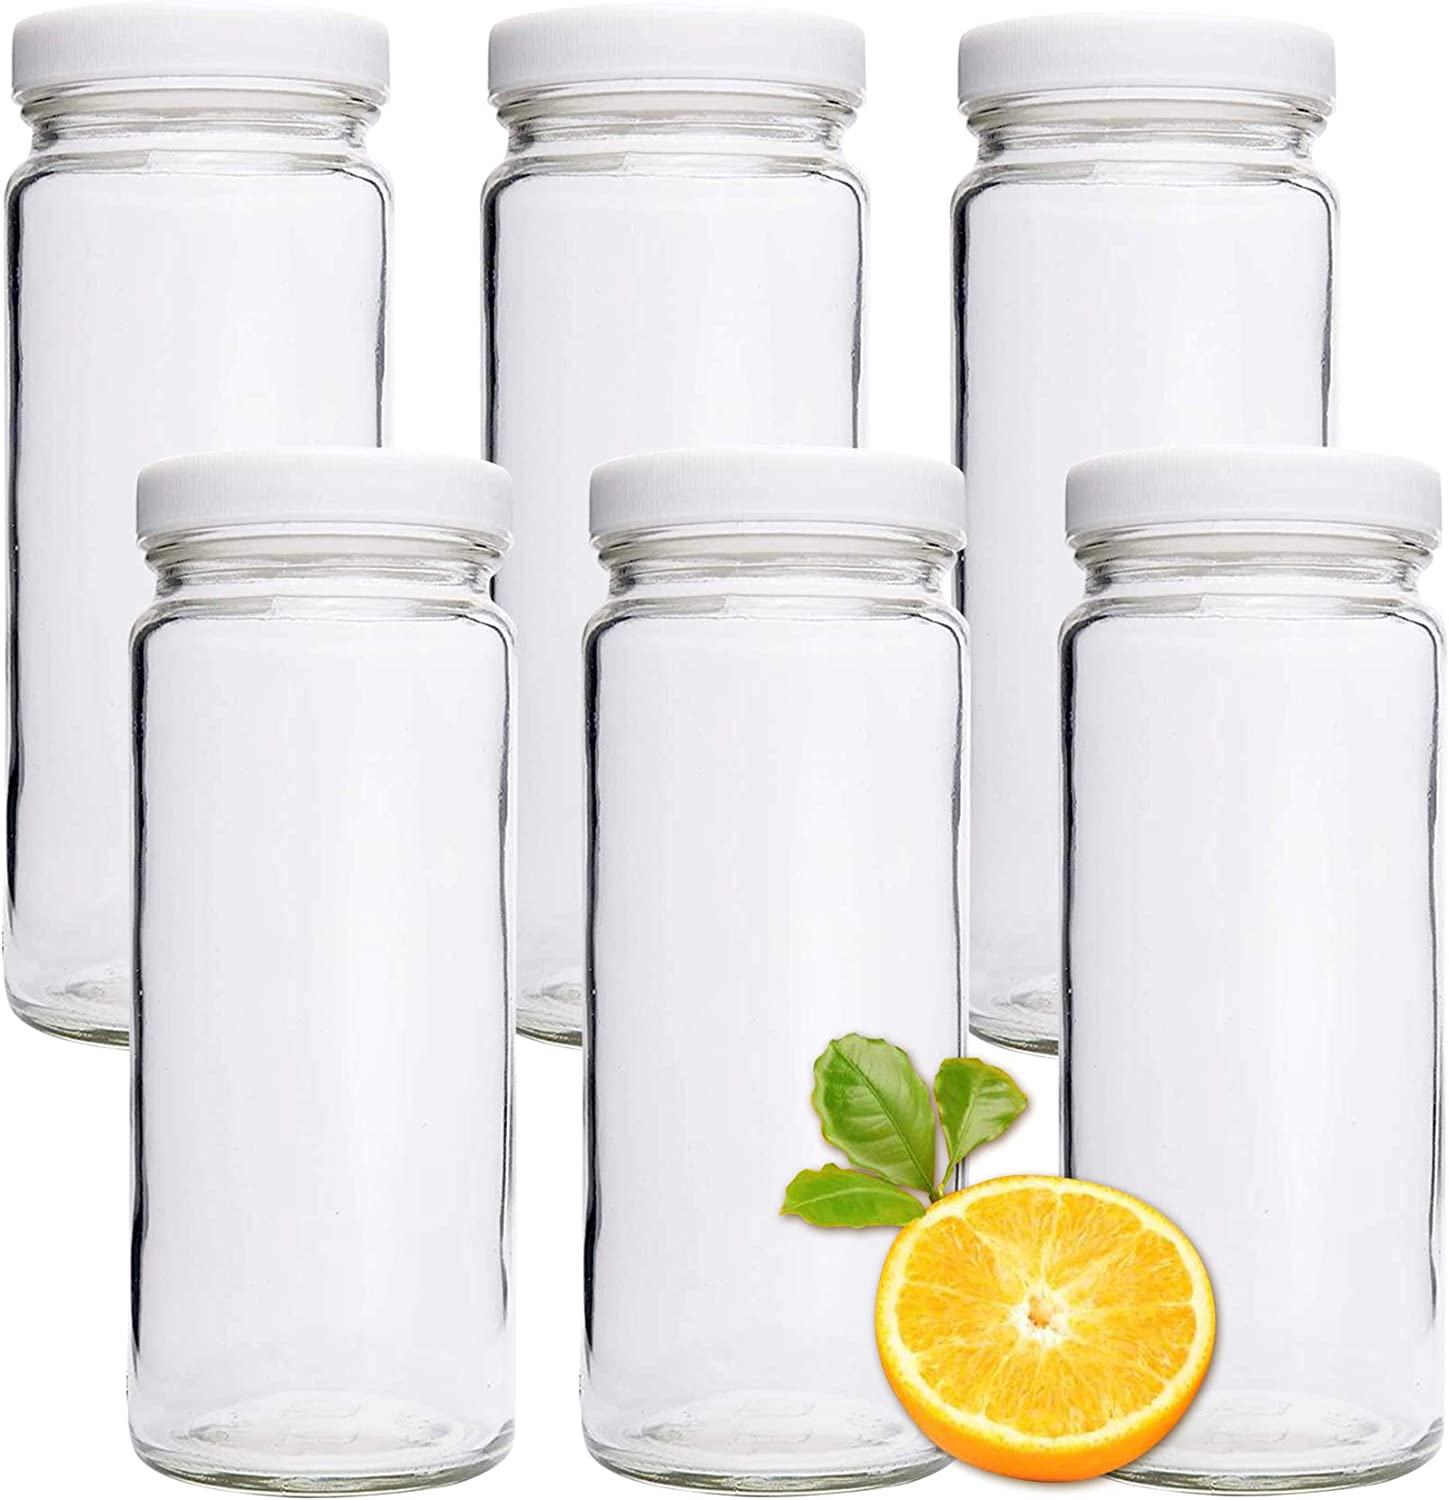 6 Pack 16 oz Clear Glass Water Bottles, Reusable Glass Beverage Bottle with Plastic Airtight Lid for Juice, Tea, Milk, Smoothies, Beverage Storage(4, 6)